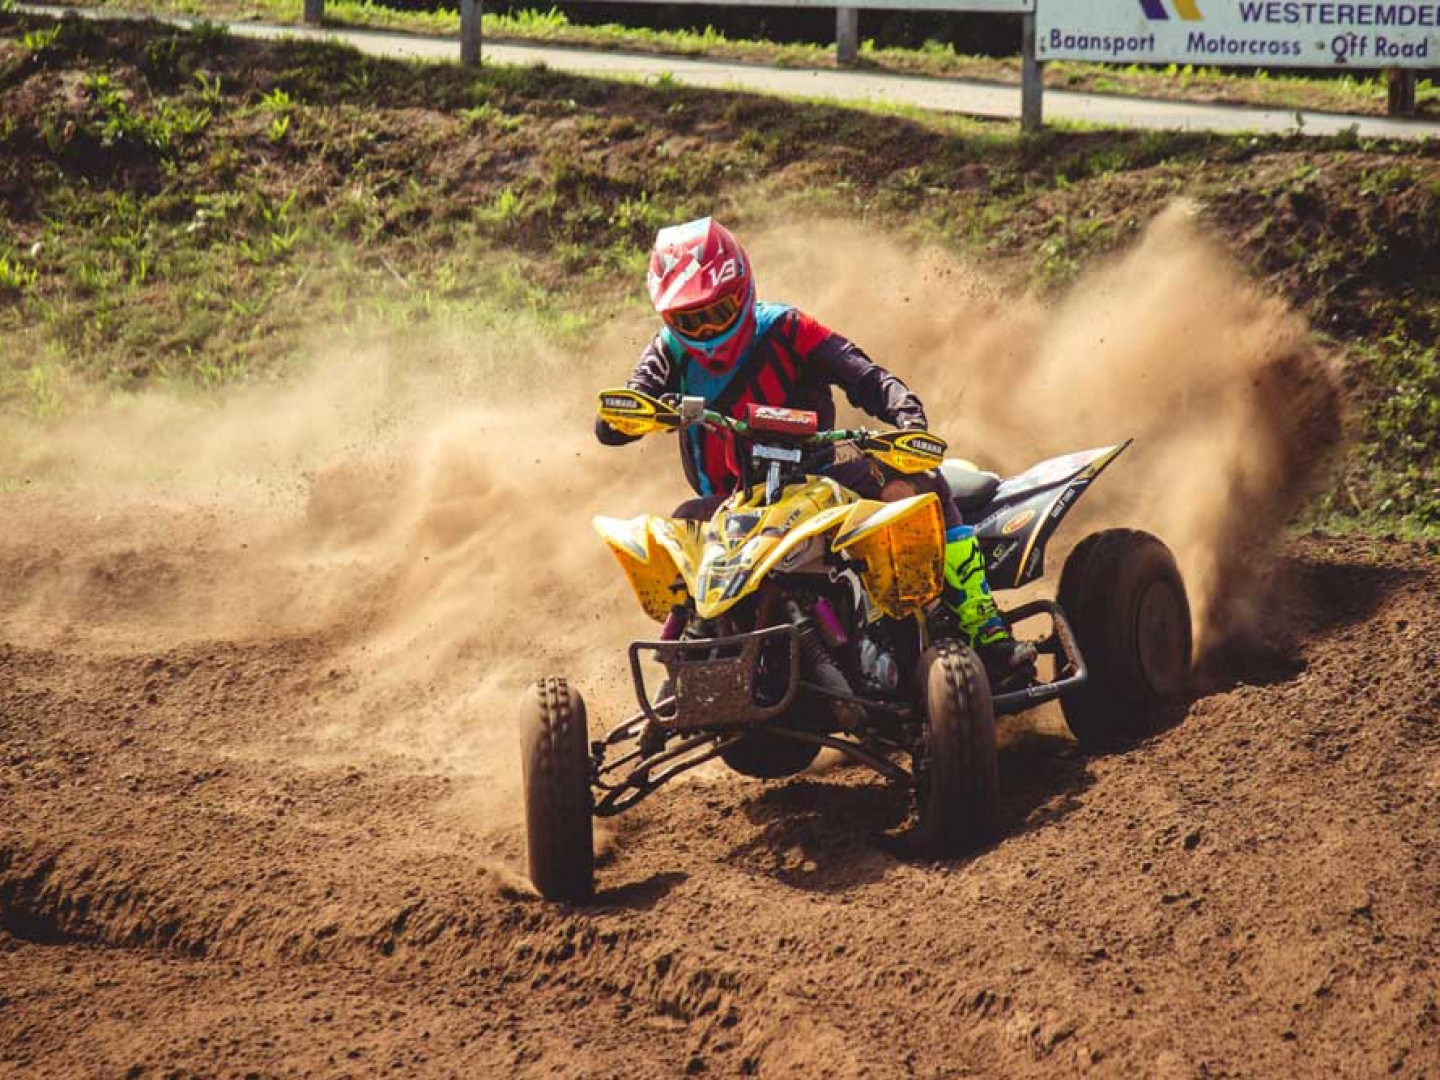 Participate in dirt bike racing events in Groveton, NH